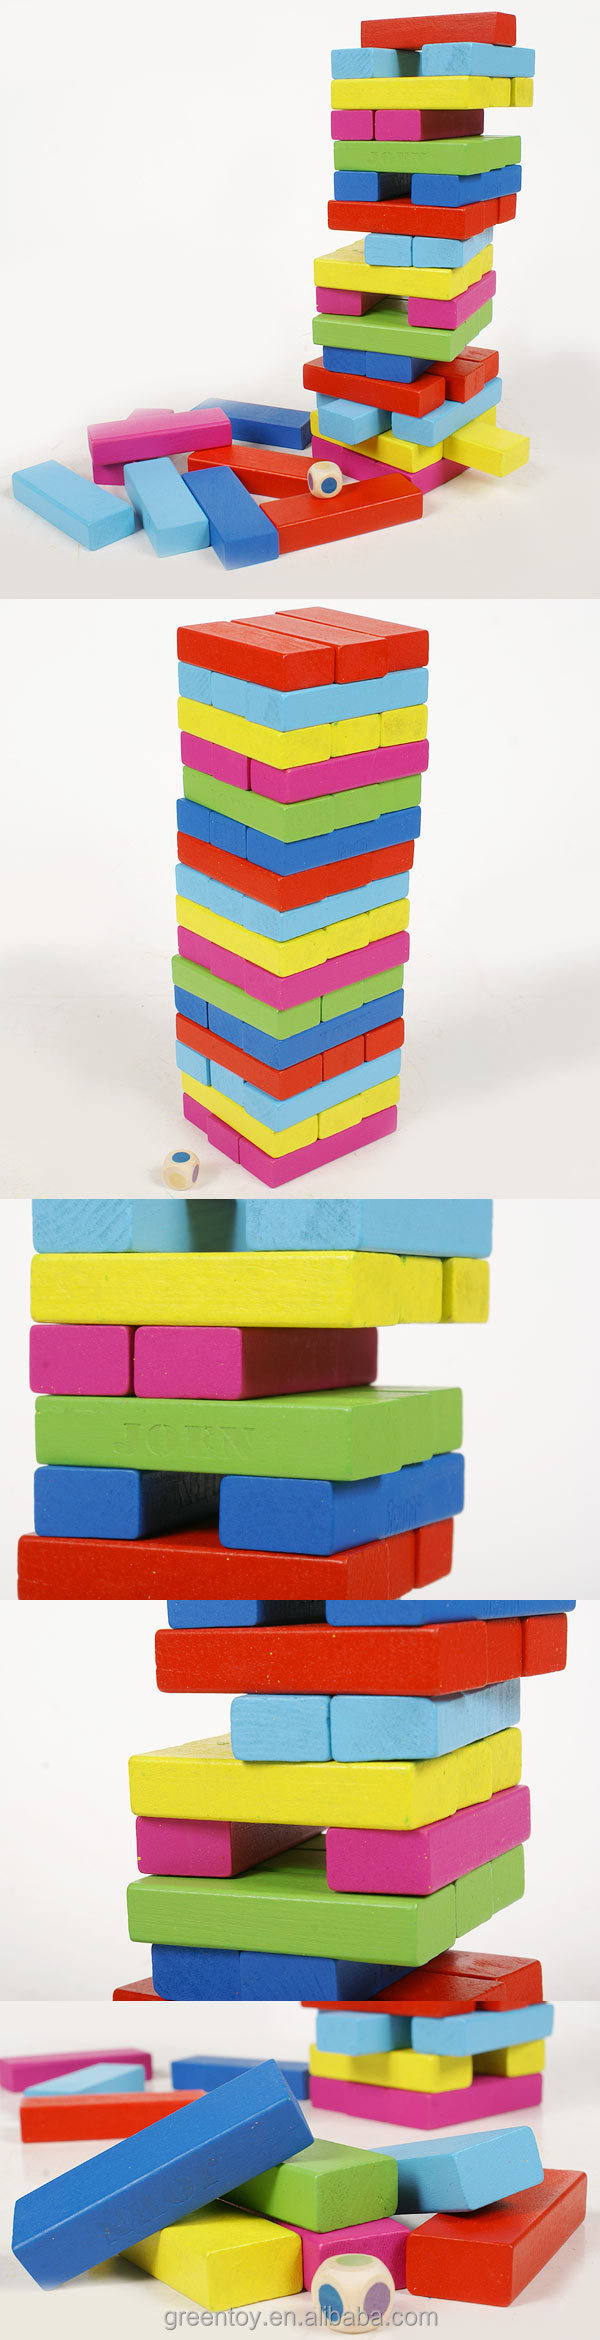 Colorful Wooden Jenga Blocks Toy Set for kids